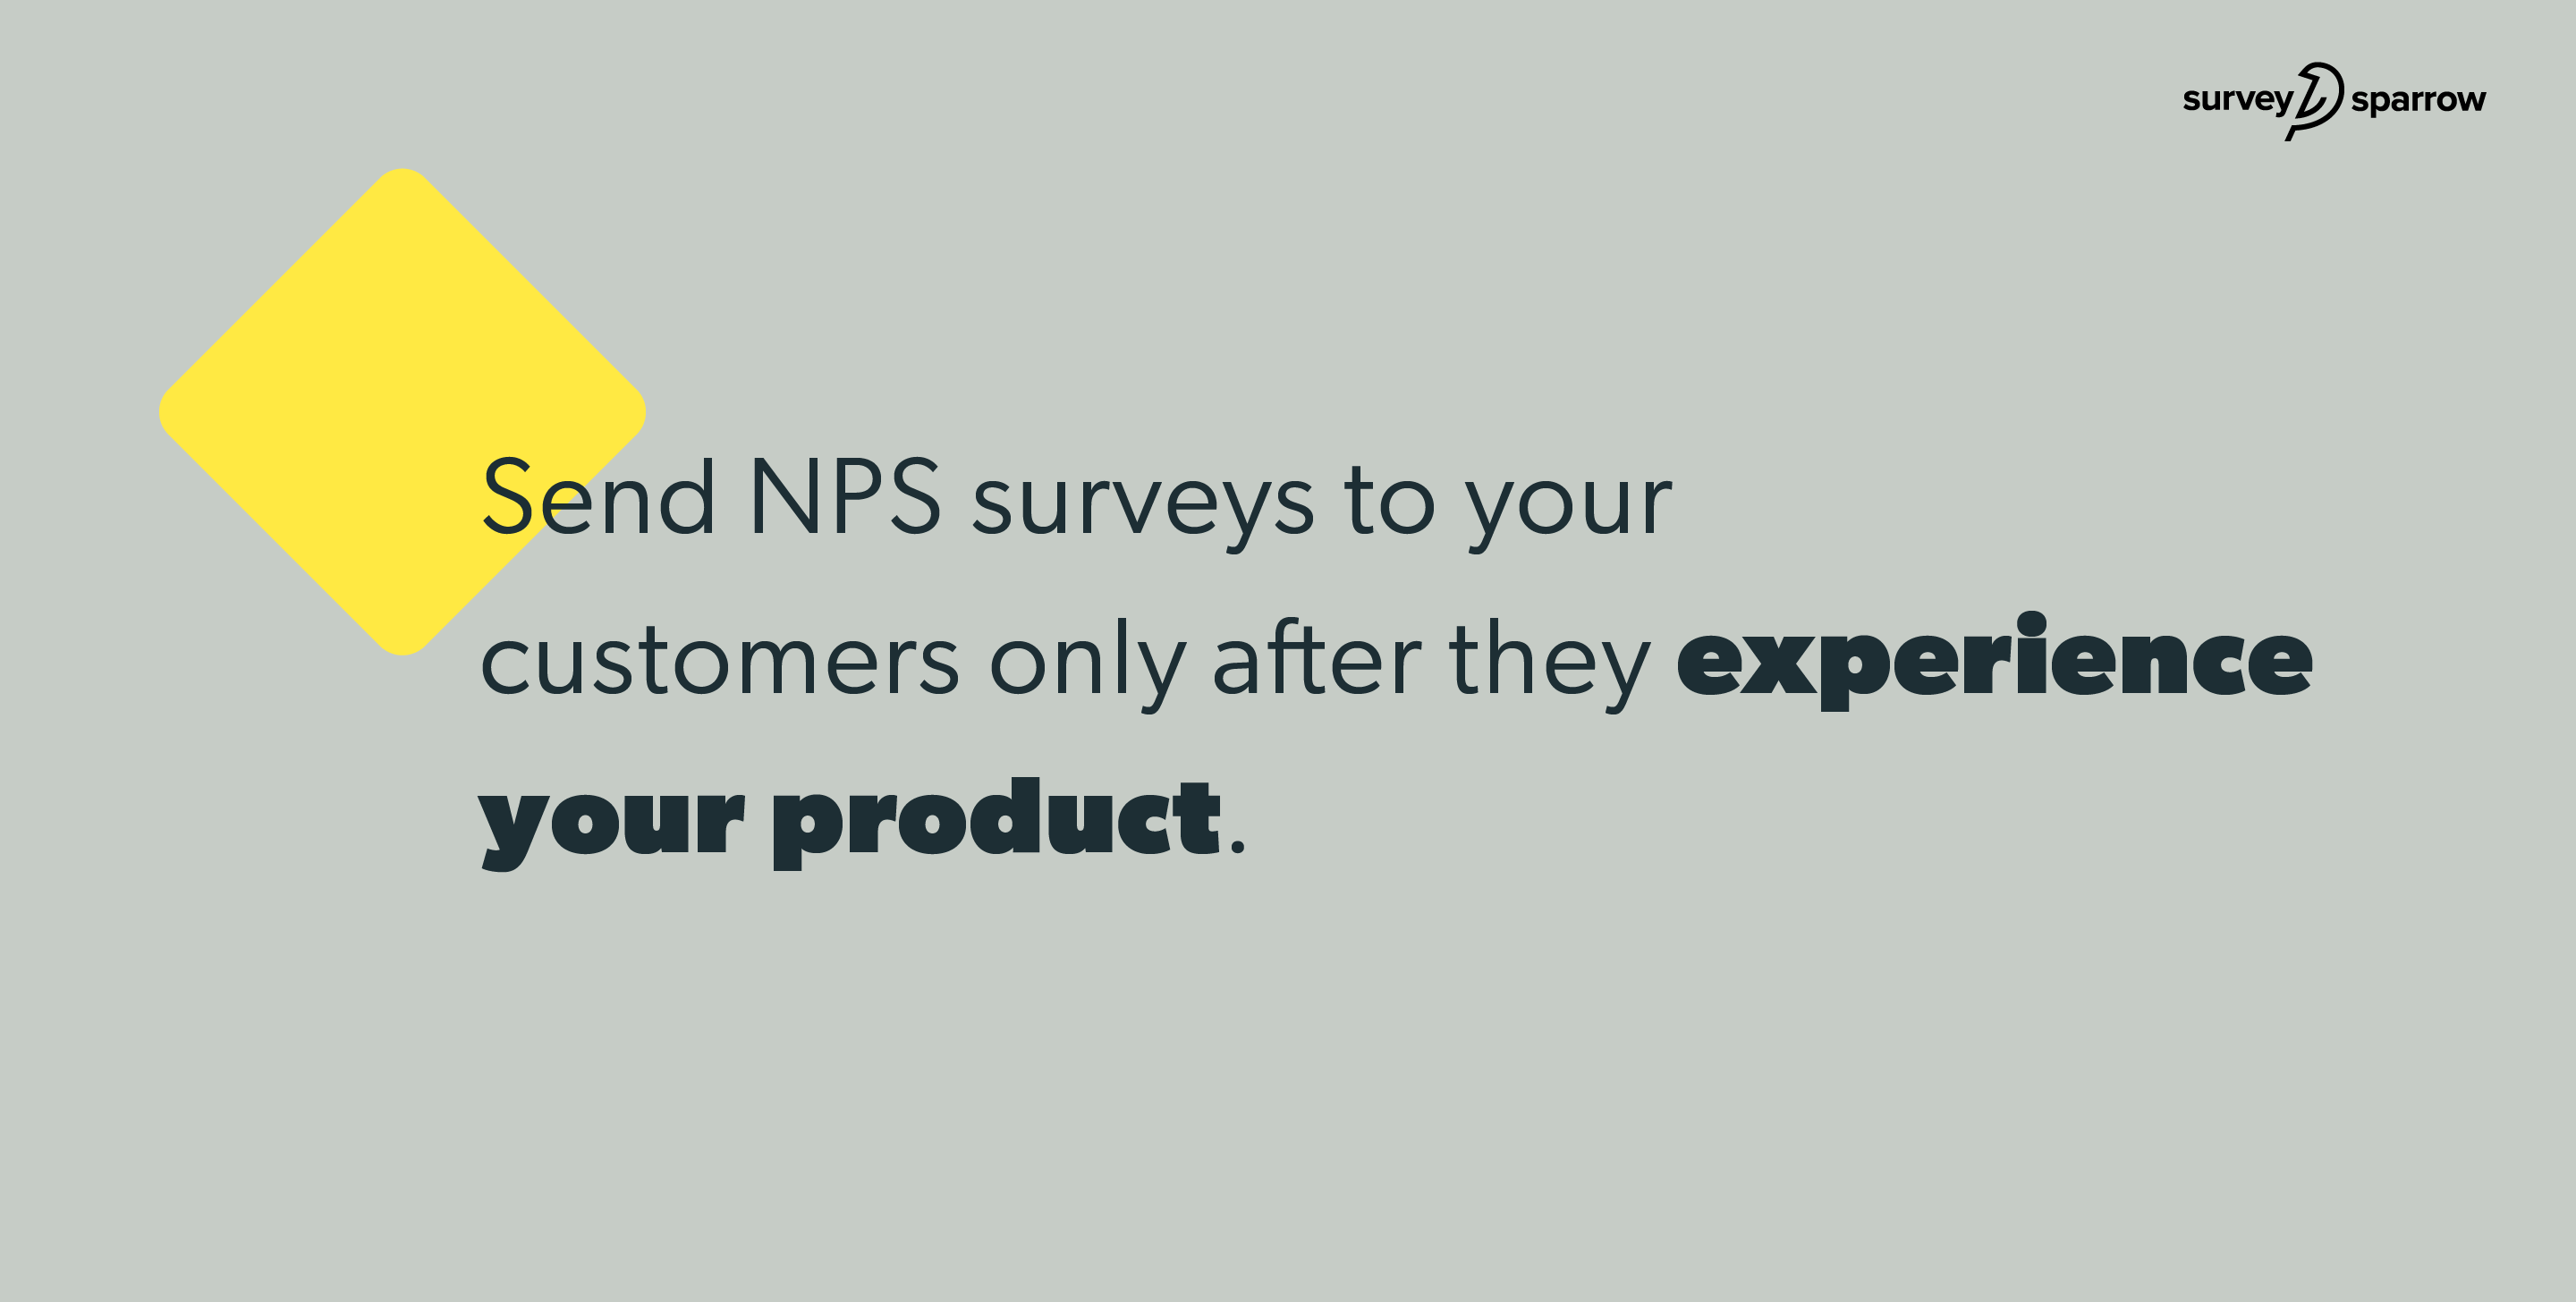 Send NPS surveys to your customers only after they experience your product.